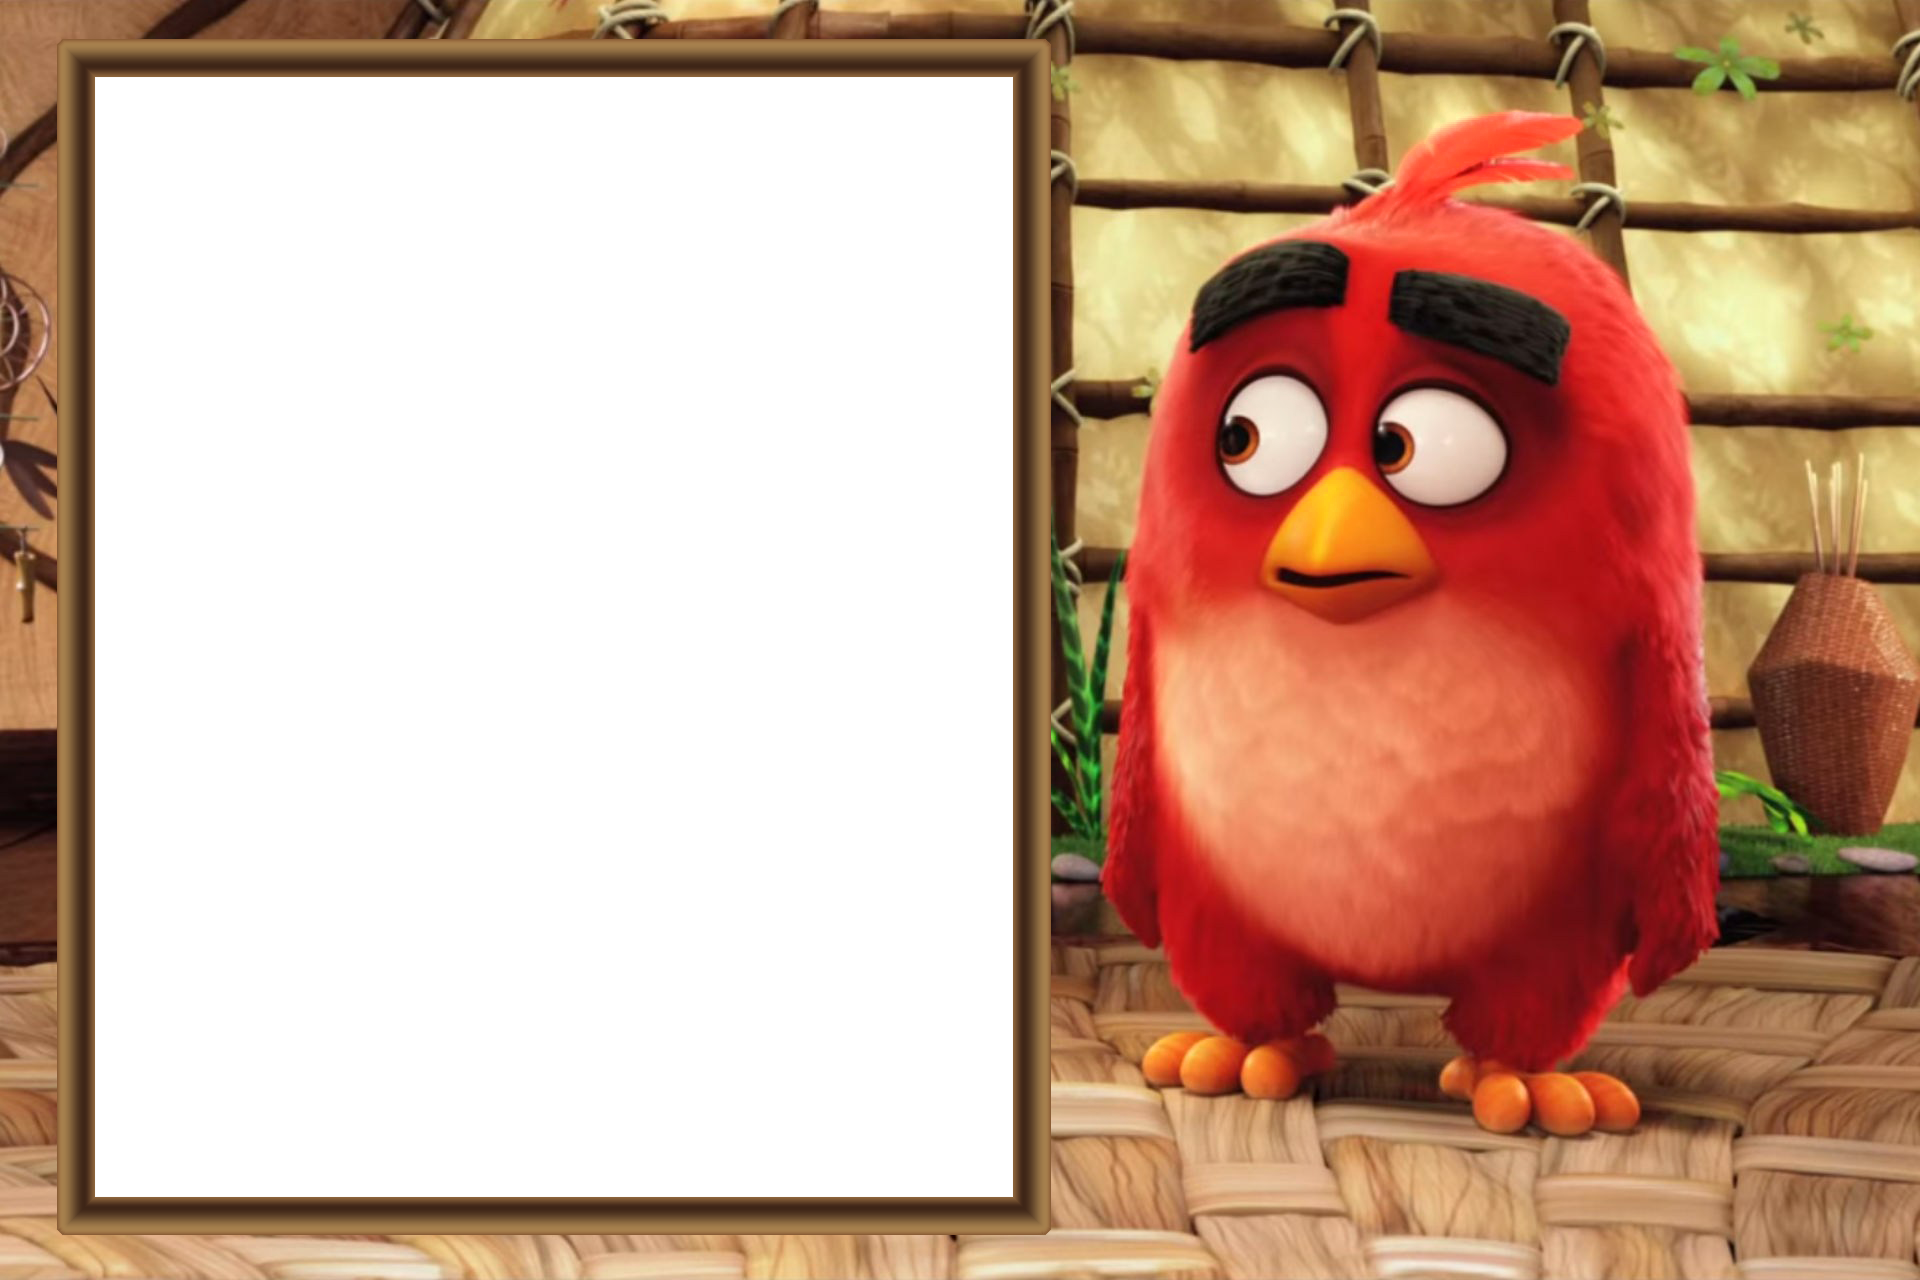 Clipart birds frame. Angry movie kids png